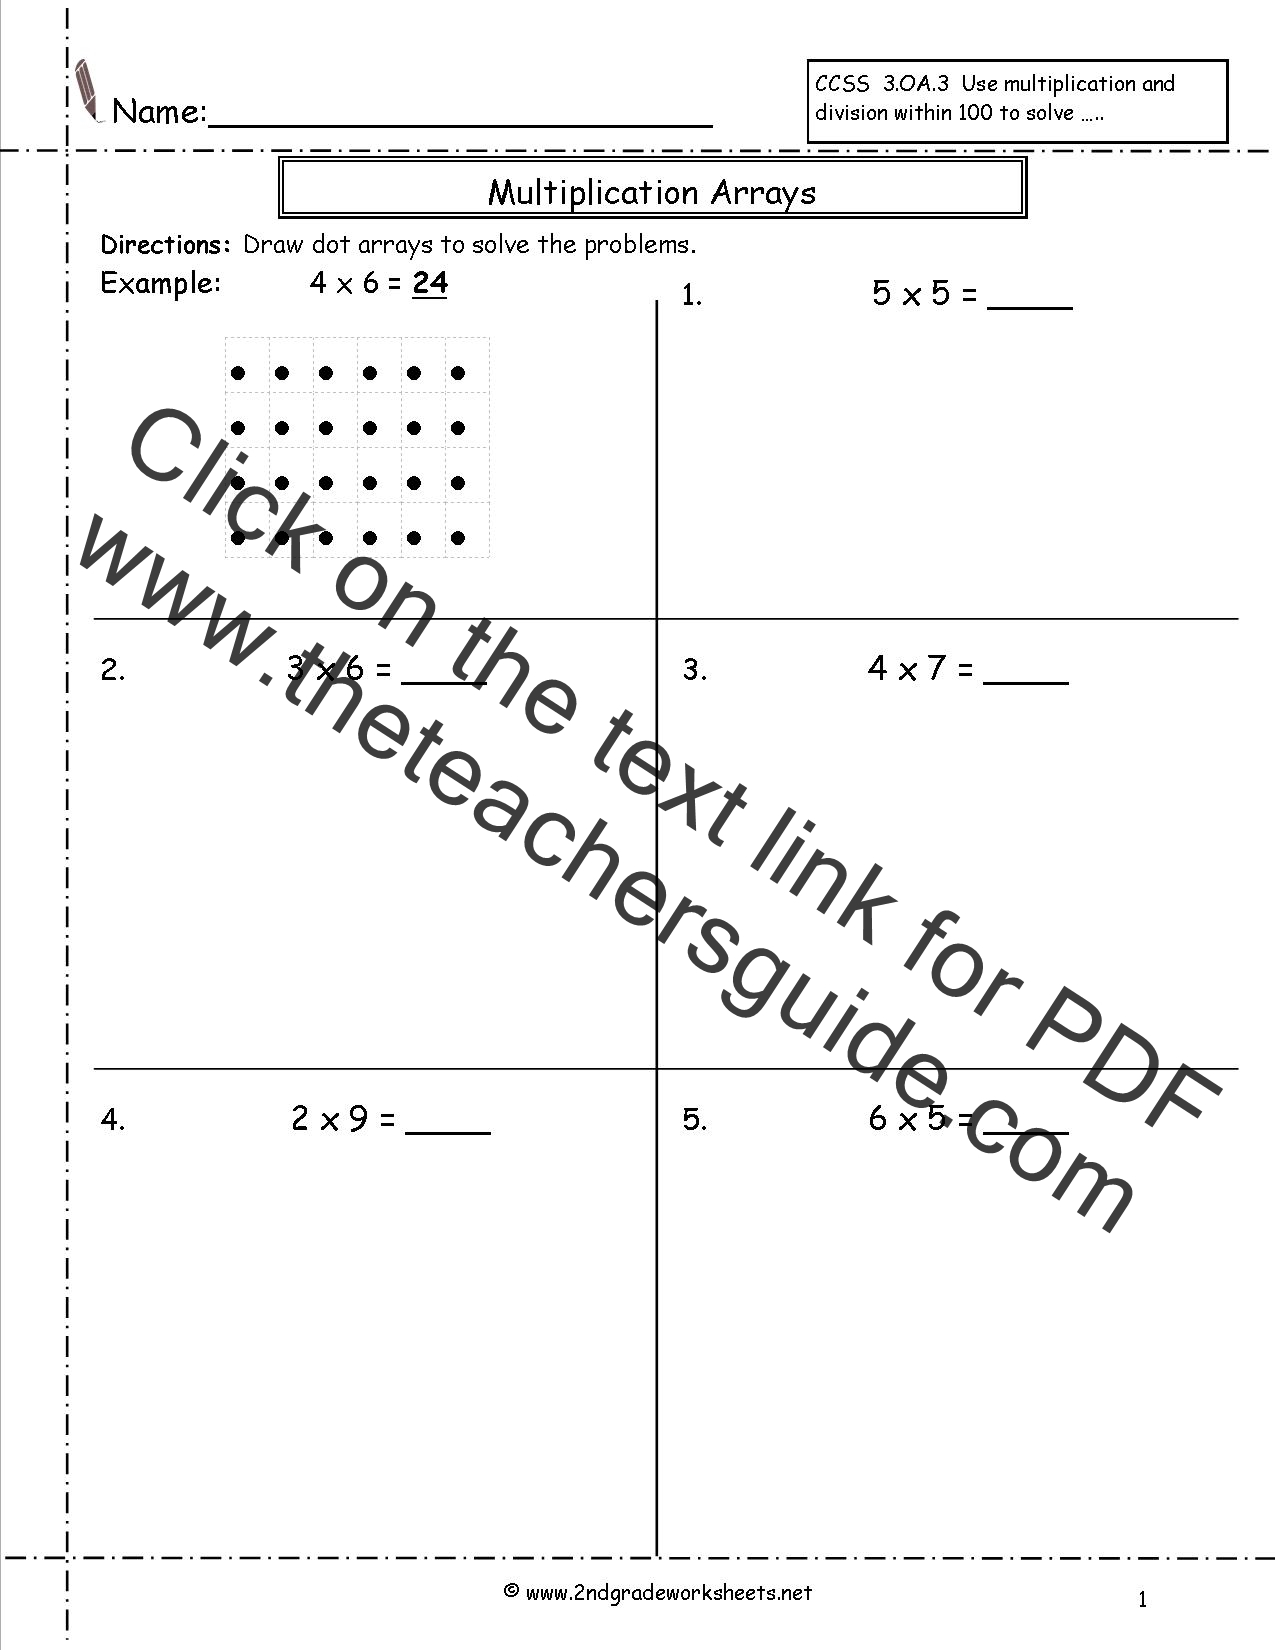 Multiplication Arrays Worksheets – Beginning Multiplication Worksheets